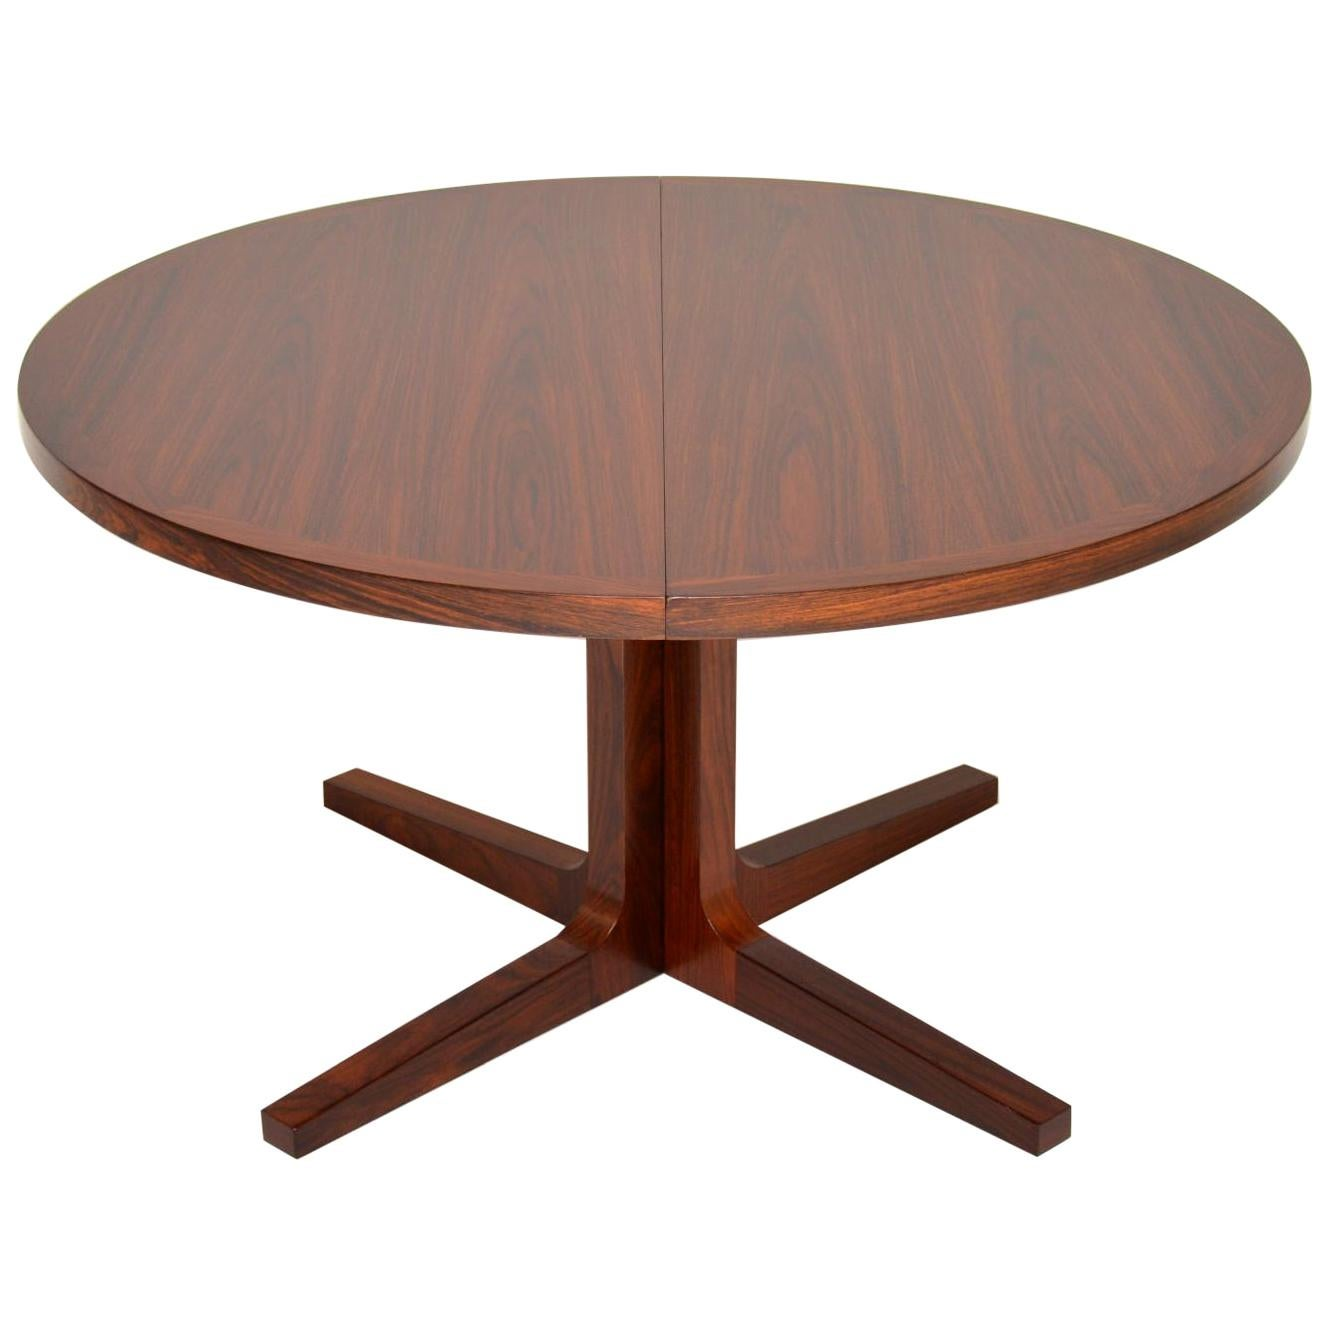 1960s Danish Extending Dining Table by Dyrlund